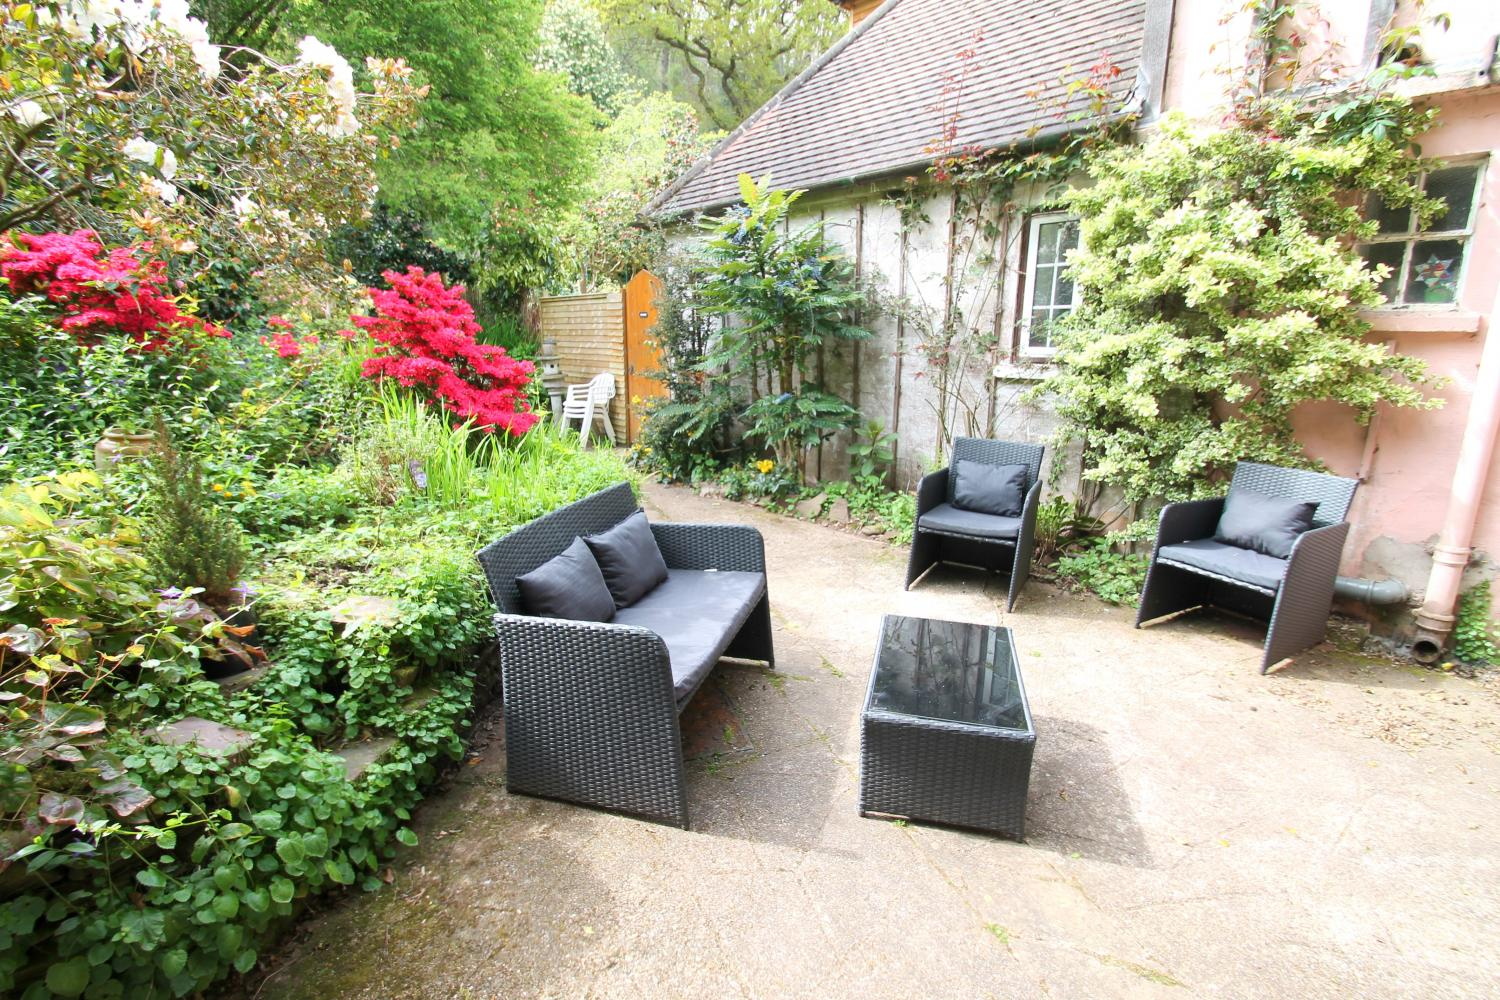 Rear patio with garden furniture